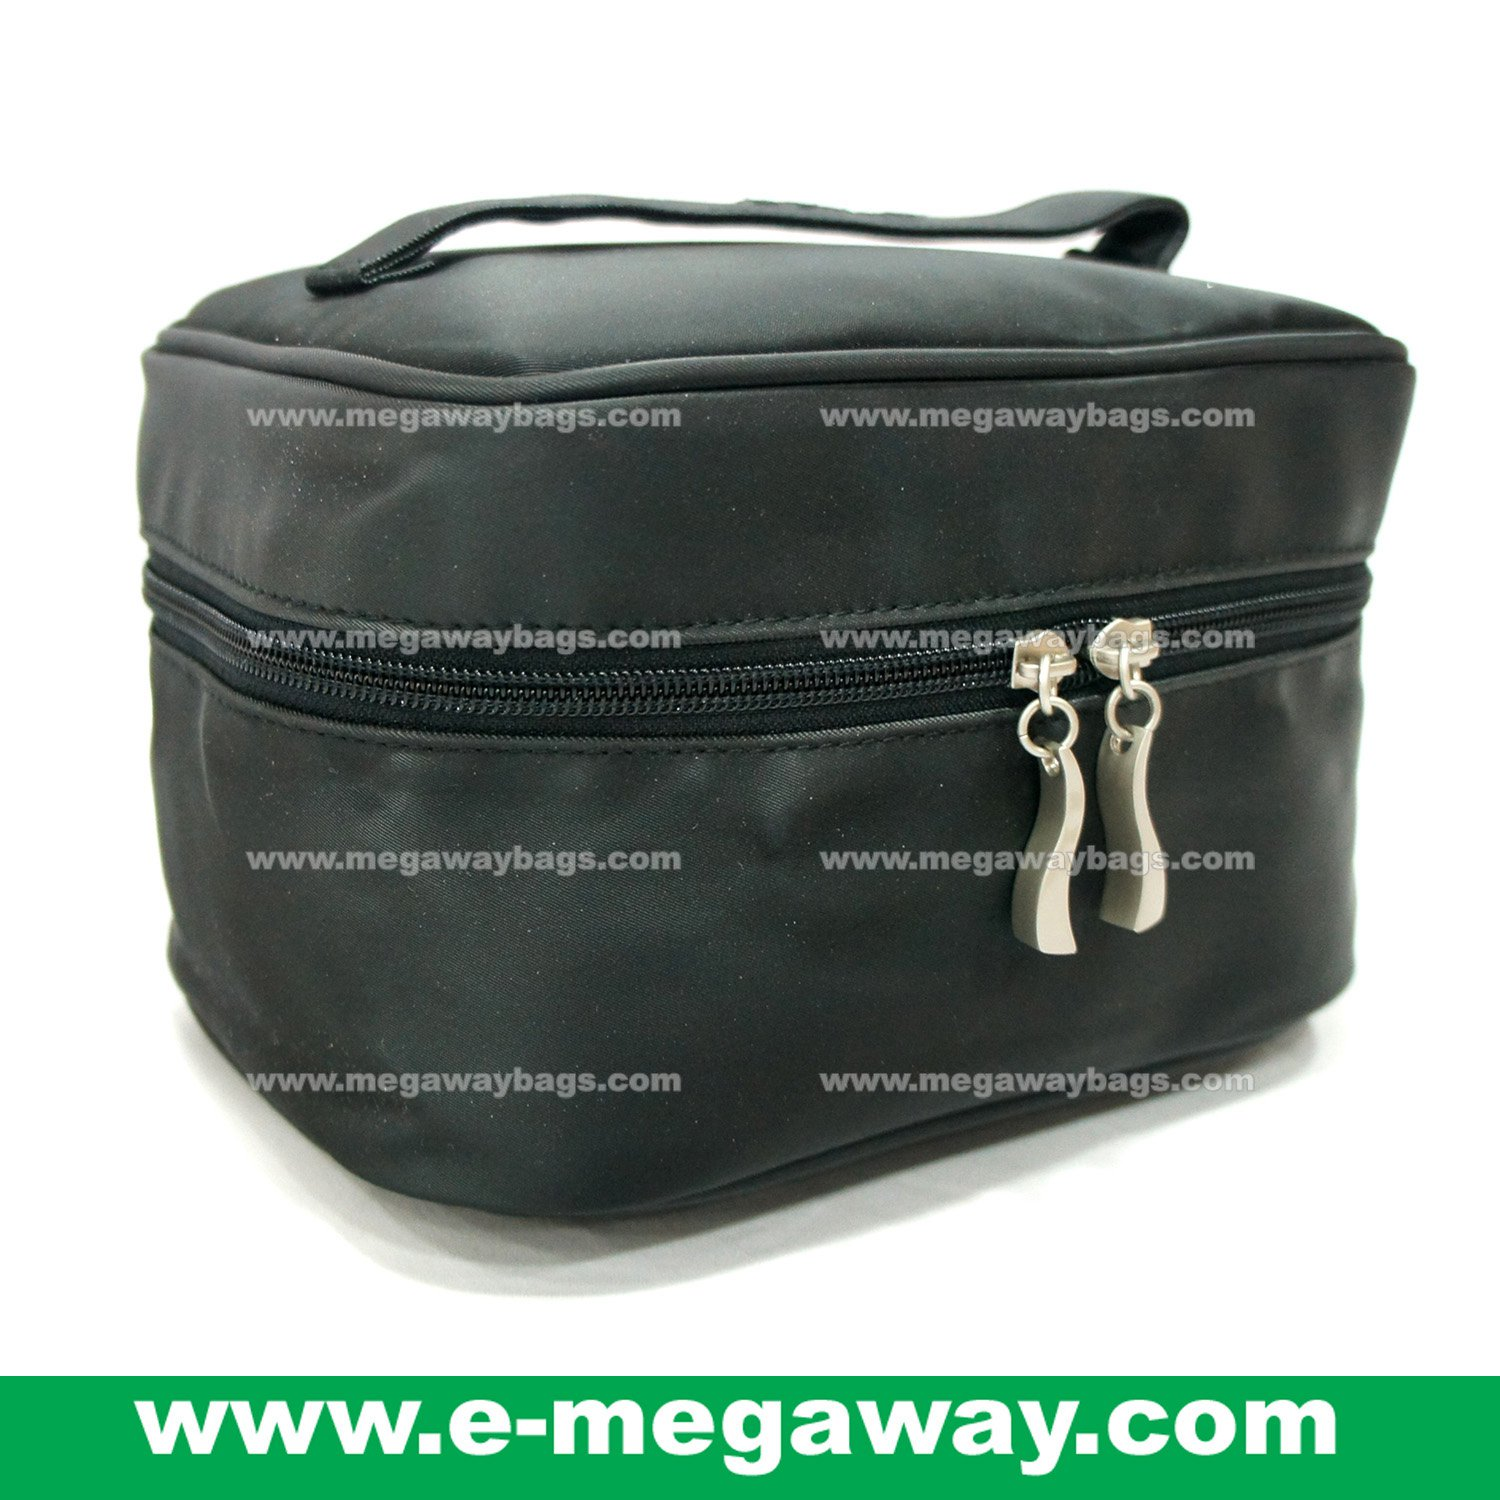 B.Young Travel Toiletary Amenity Organizer Cosmetic Make Up Bag Tote Beauty MegawayBags #CC-0805